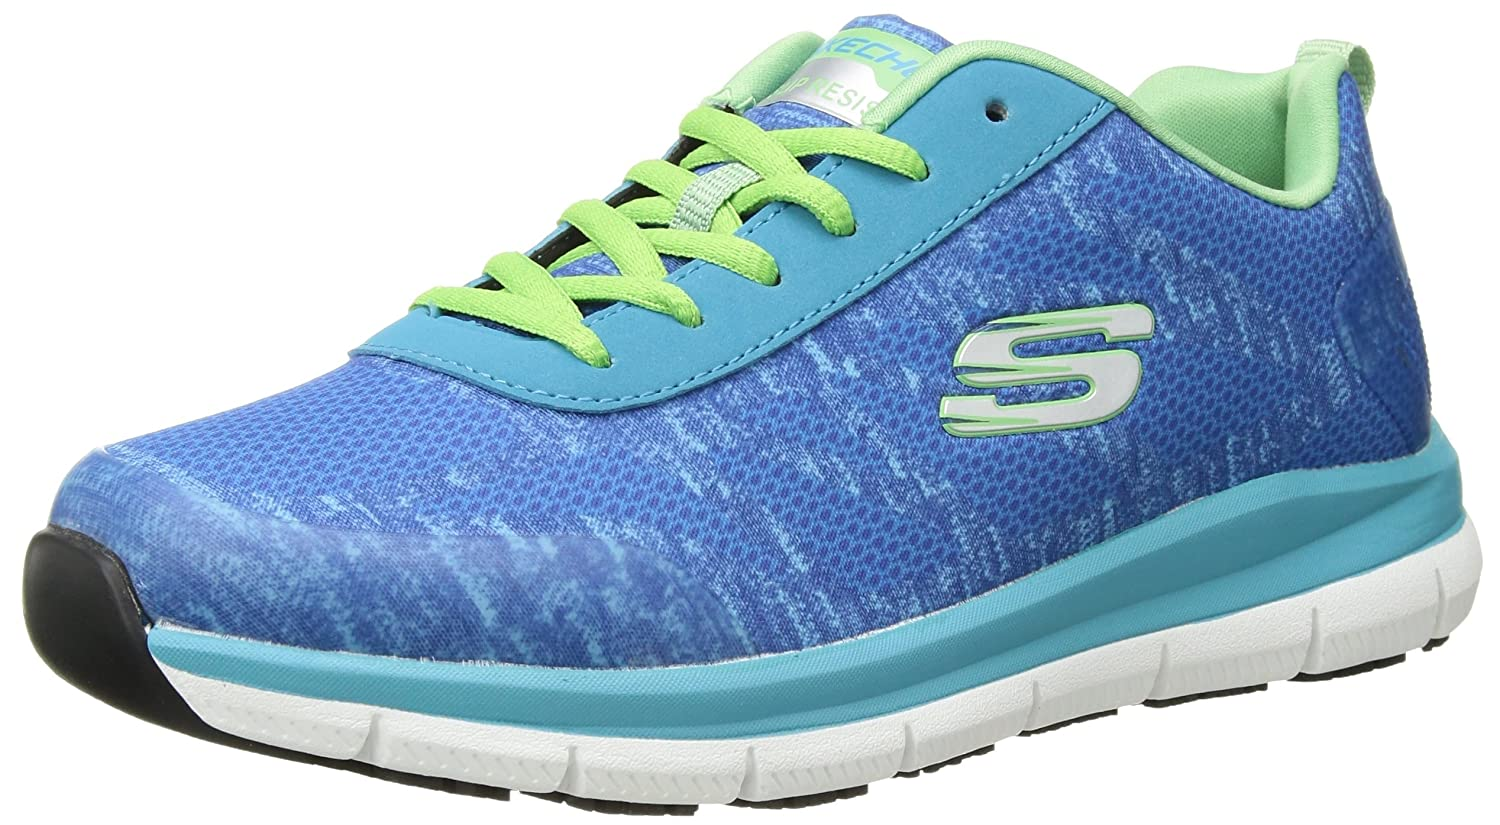 Skechers Women's Comfort Health Flex HC Pro SR Health Comfort Care Service Shoe B071ZN5BLX 8 B(M) US|Light Blue/Green 9ff977